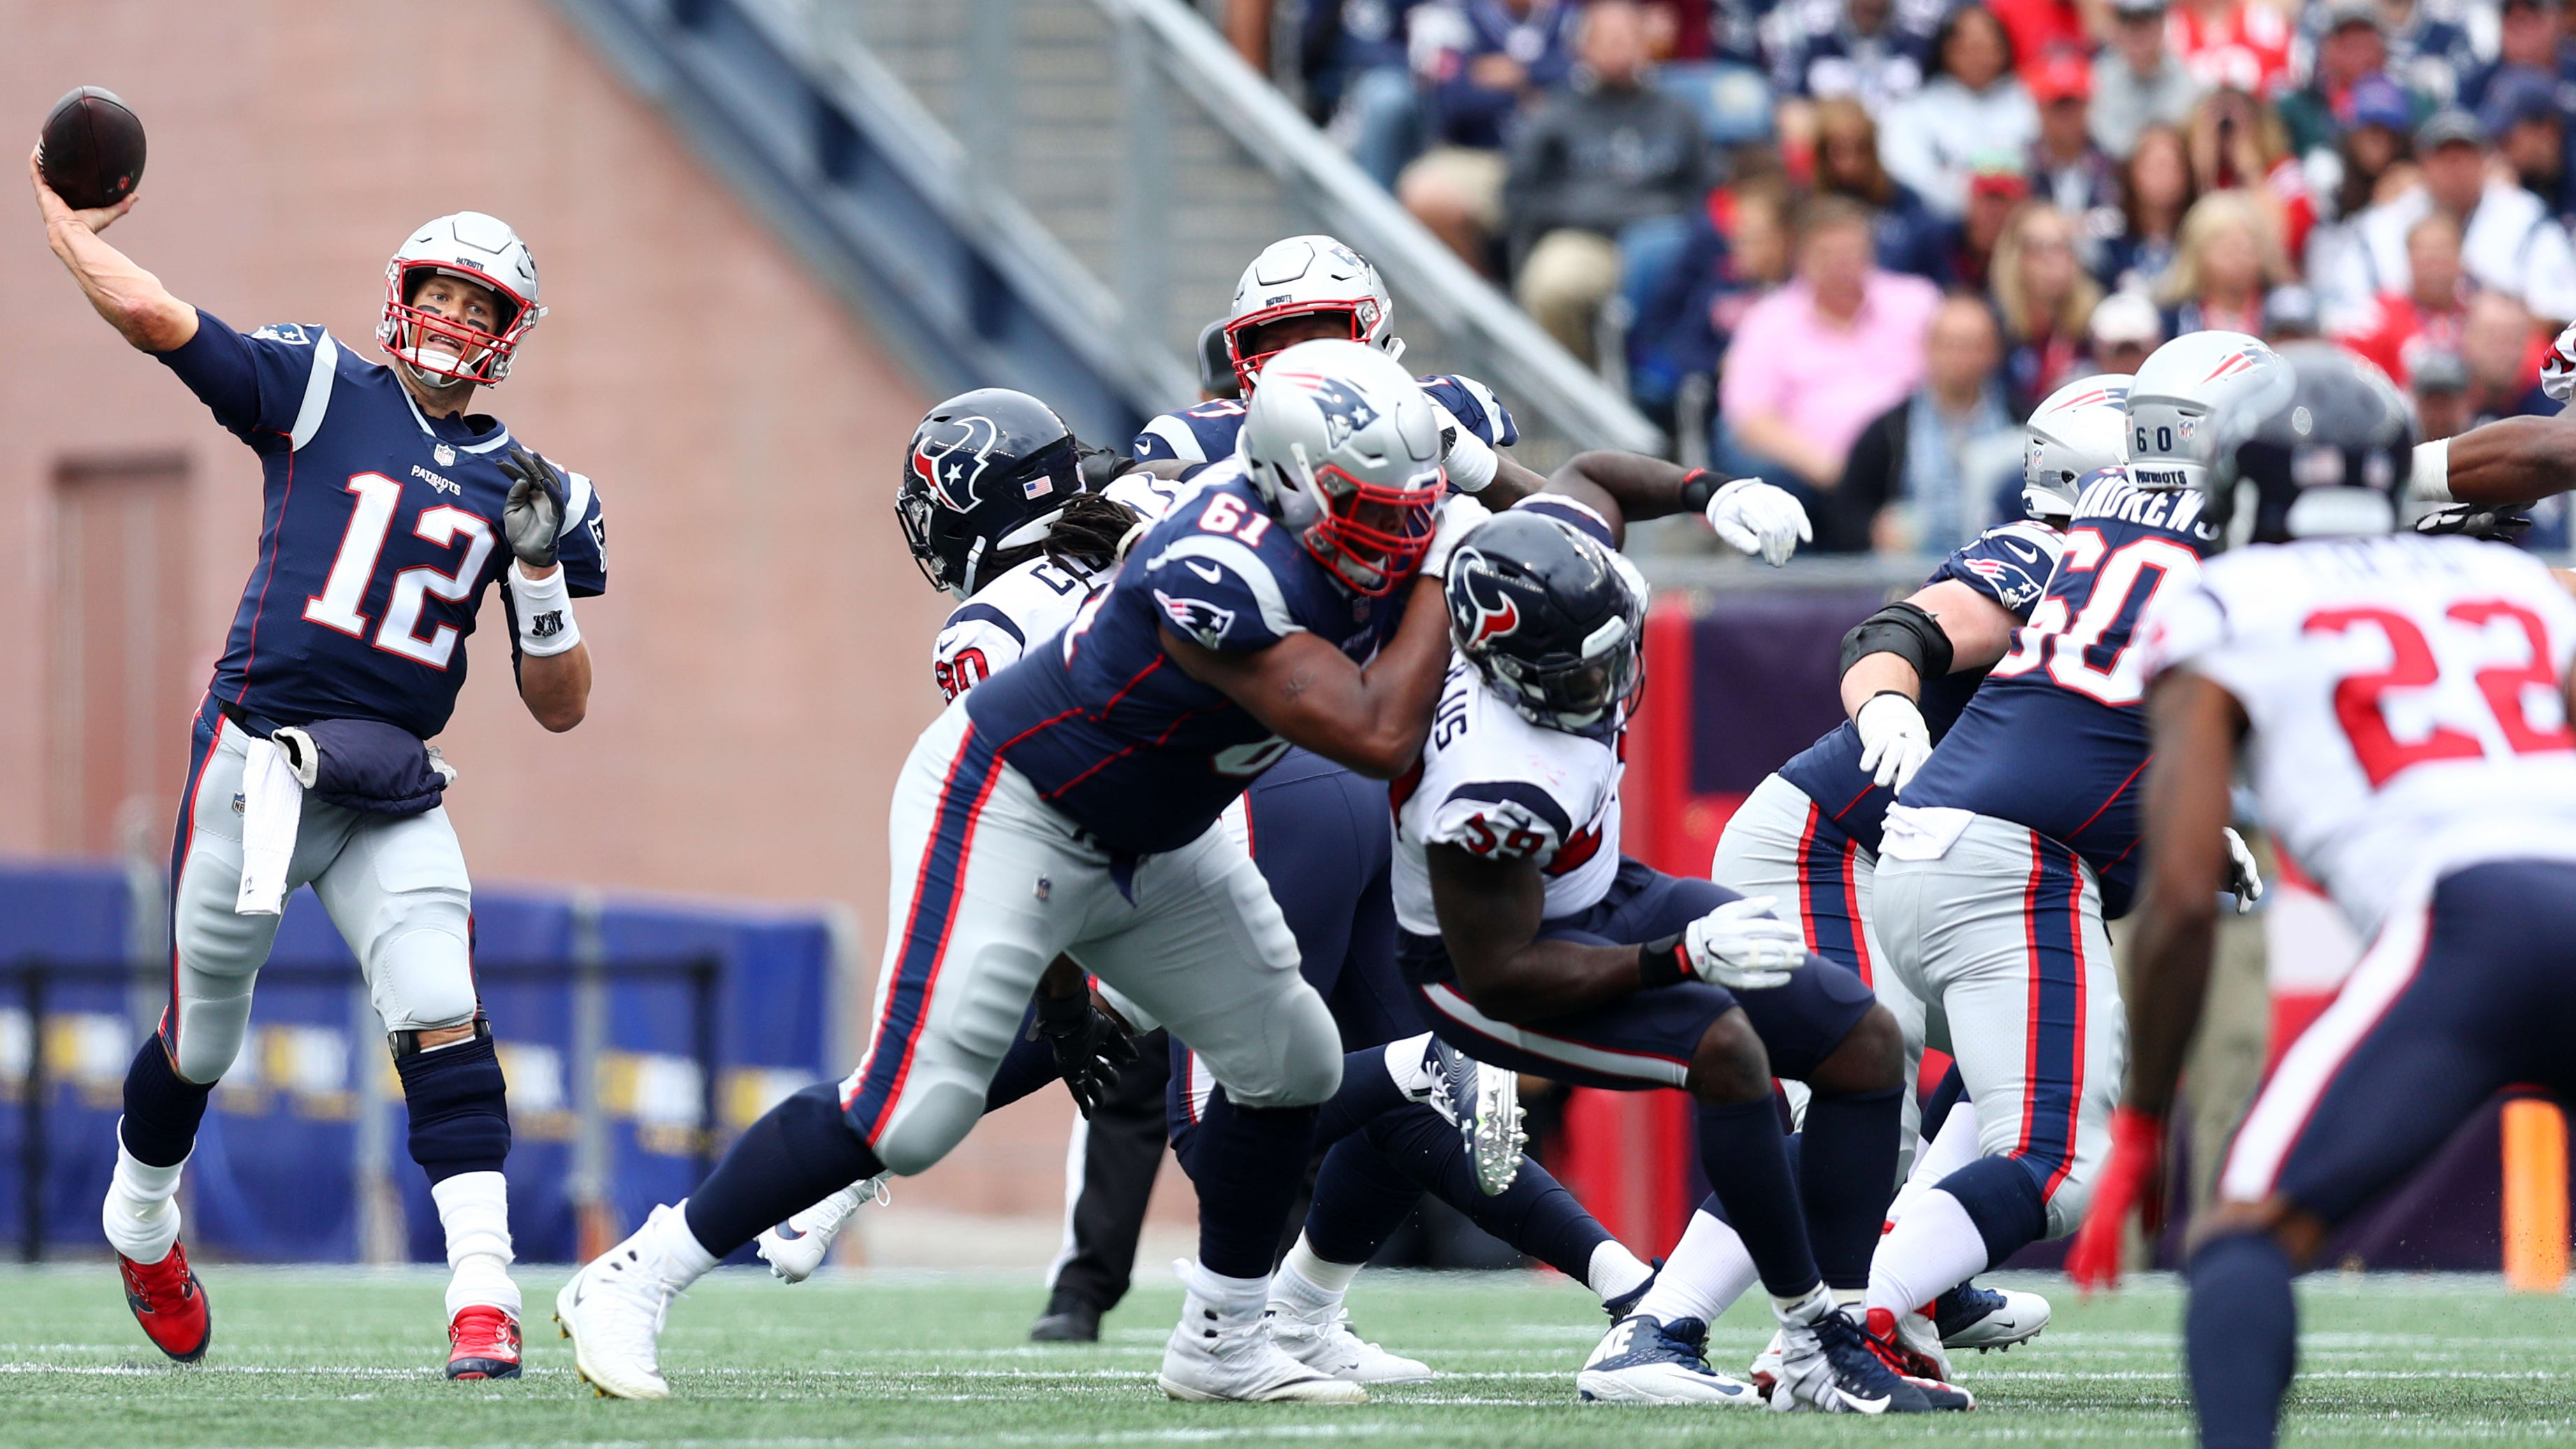 FOXBOROUGH, MA - SEPTEMBER 09: Tom Brady #12 of the New England Patriots makes a pass against the Houston Texans at Gillette Stadium on September 9, 2018 in Foxborough, Massachusetts.(Photo by Maddie Meyer/Getty Images)